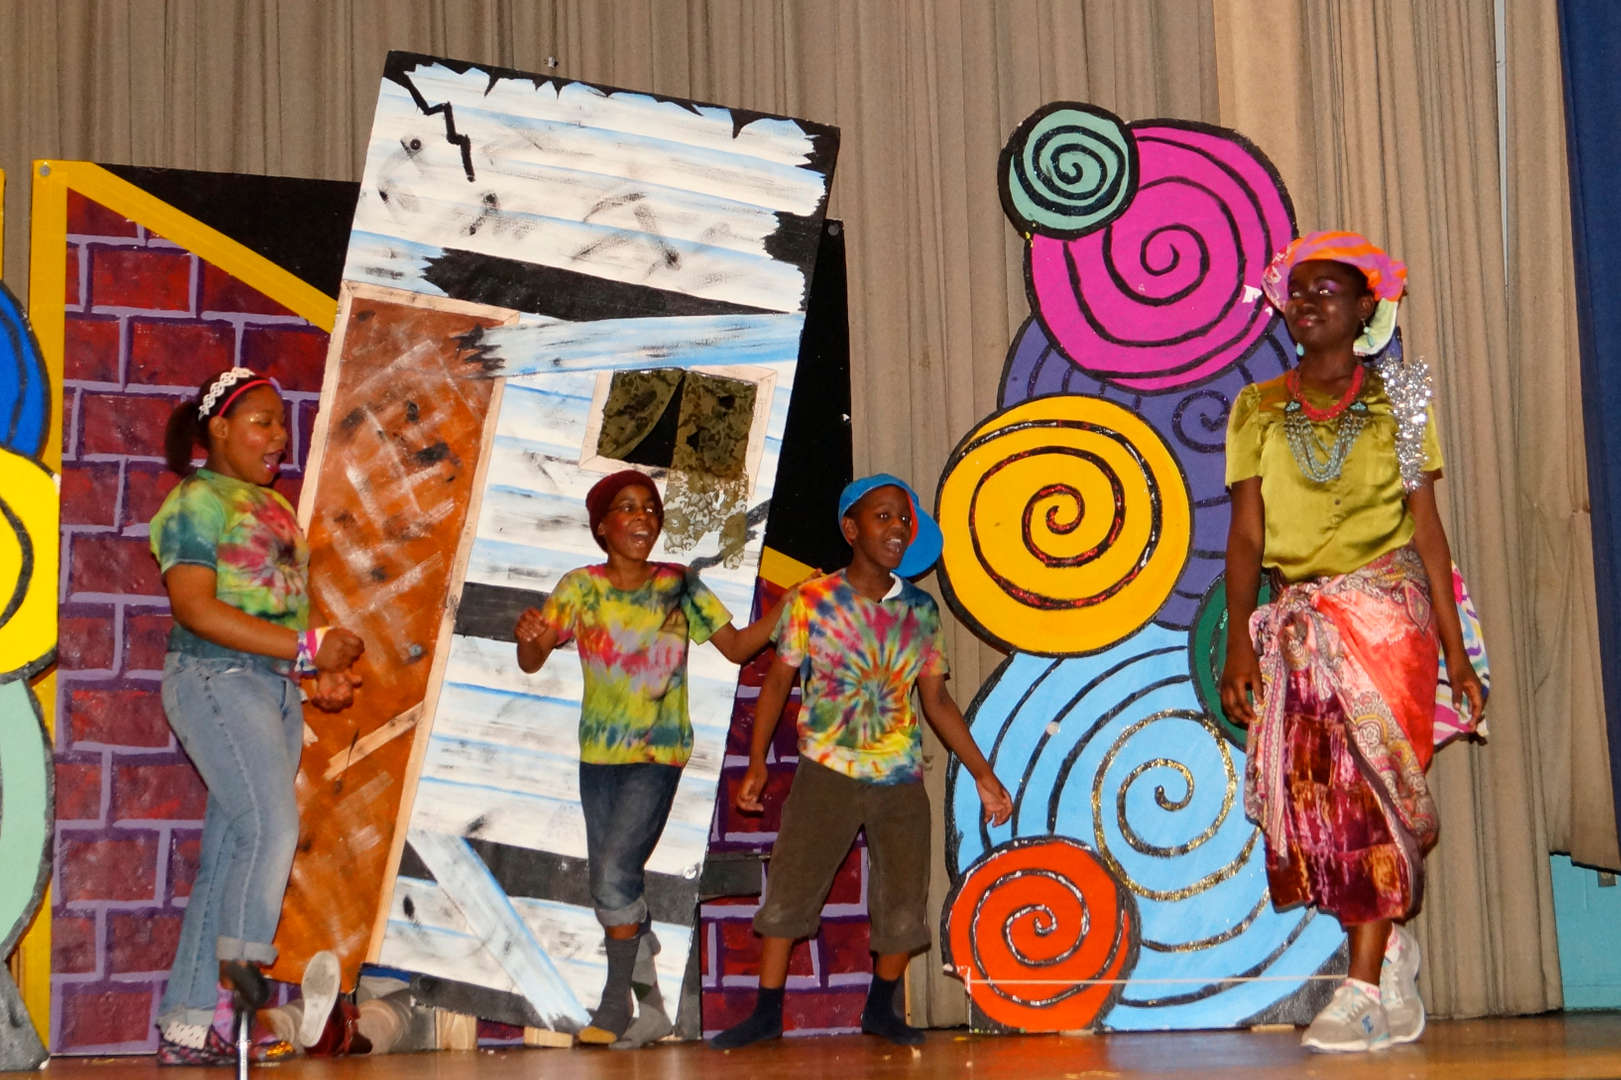 Students dancing together in scene of The Wiz